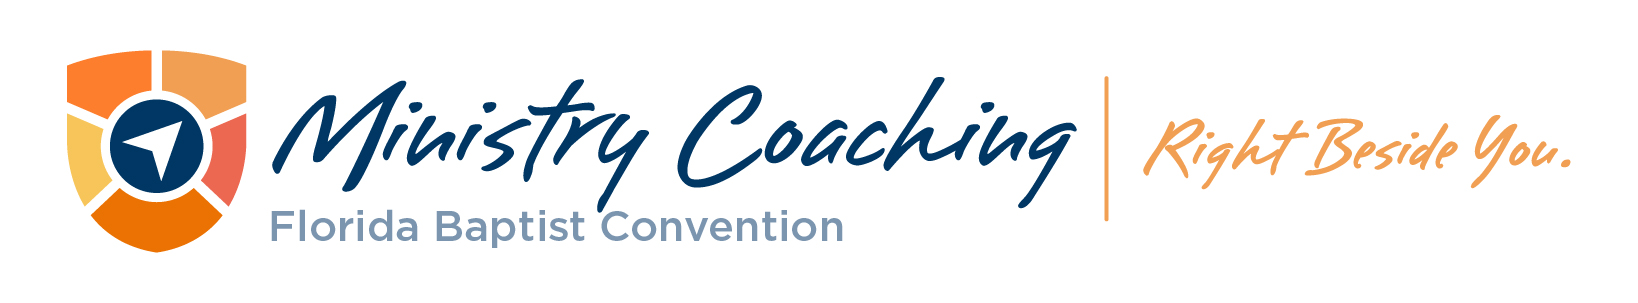 Ministry Coaching, Florida Baptist Convention,